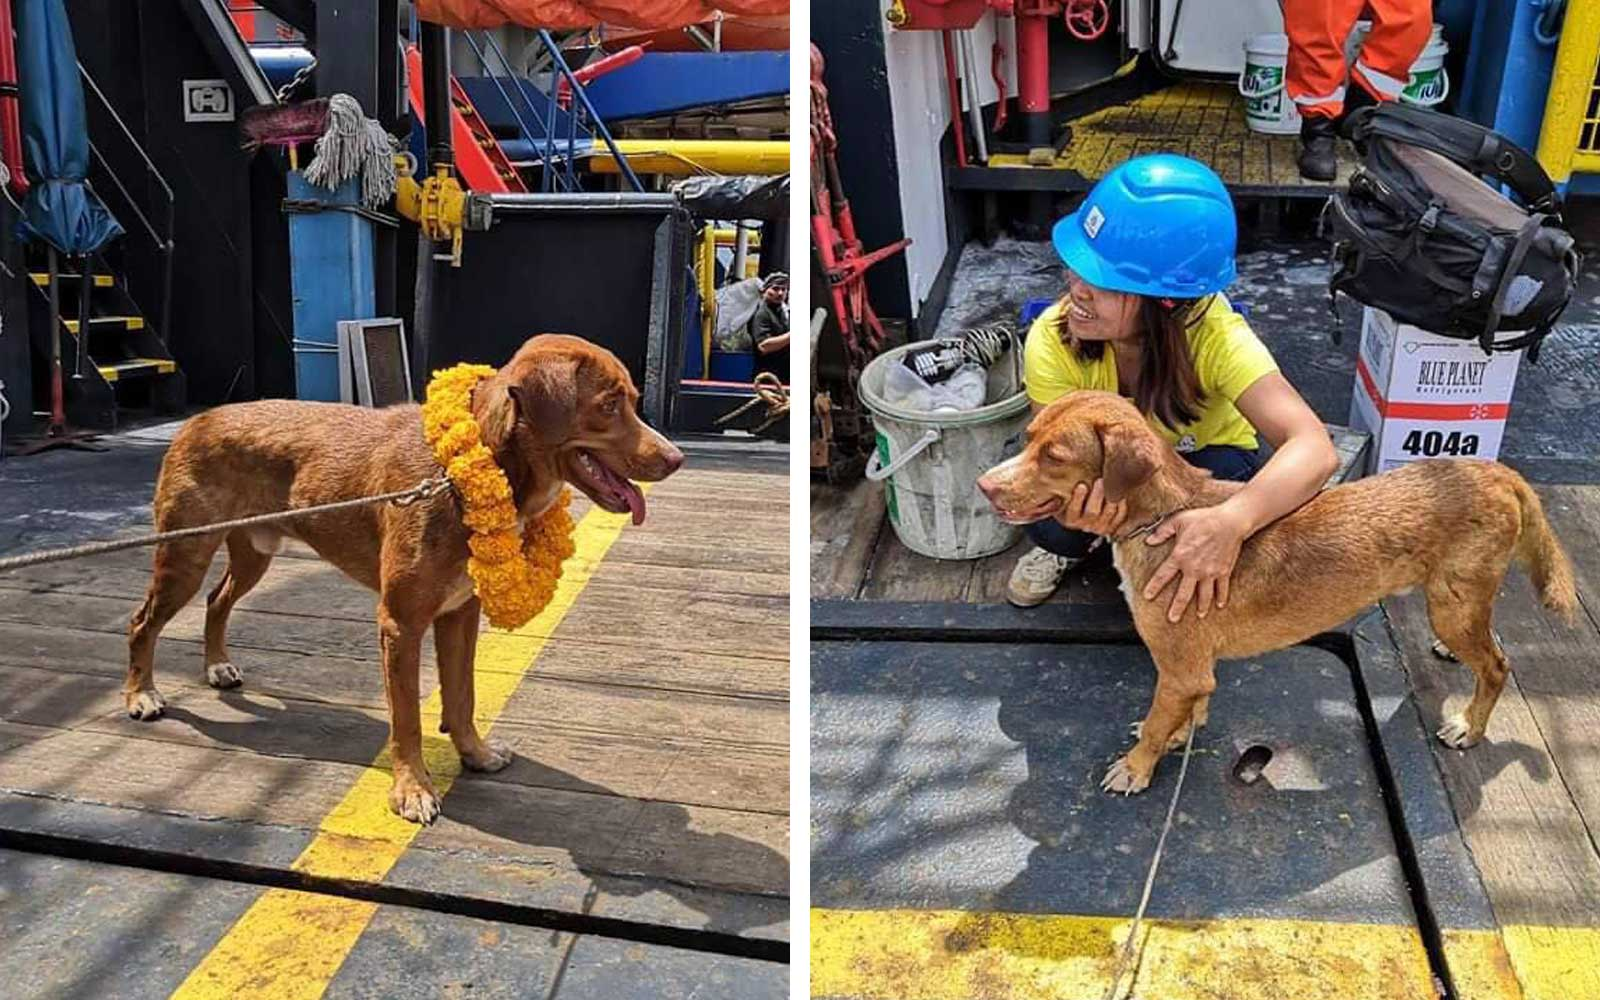 A dog rescued in the Gulf of Thailand by oil rig workers, At Sea - 17 Apr 2019